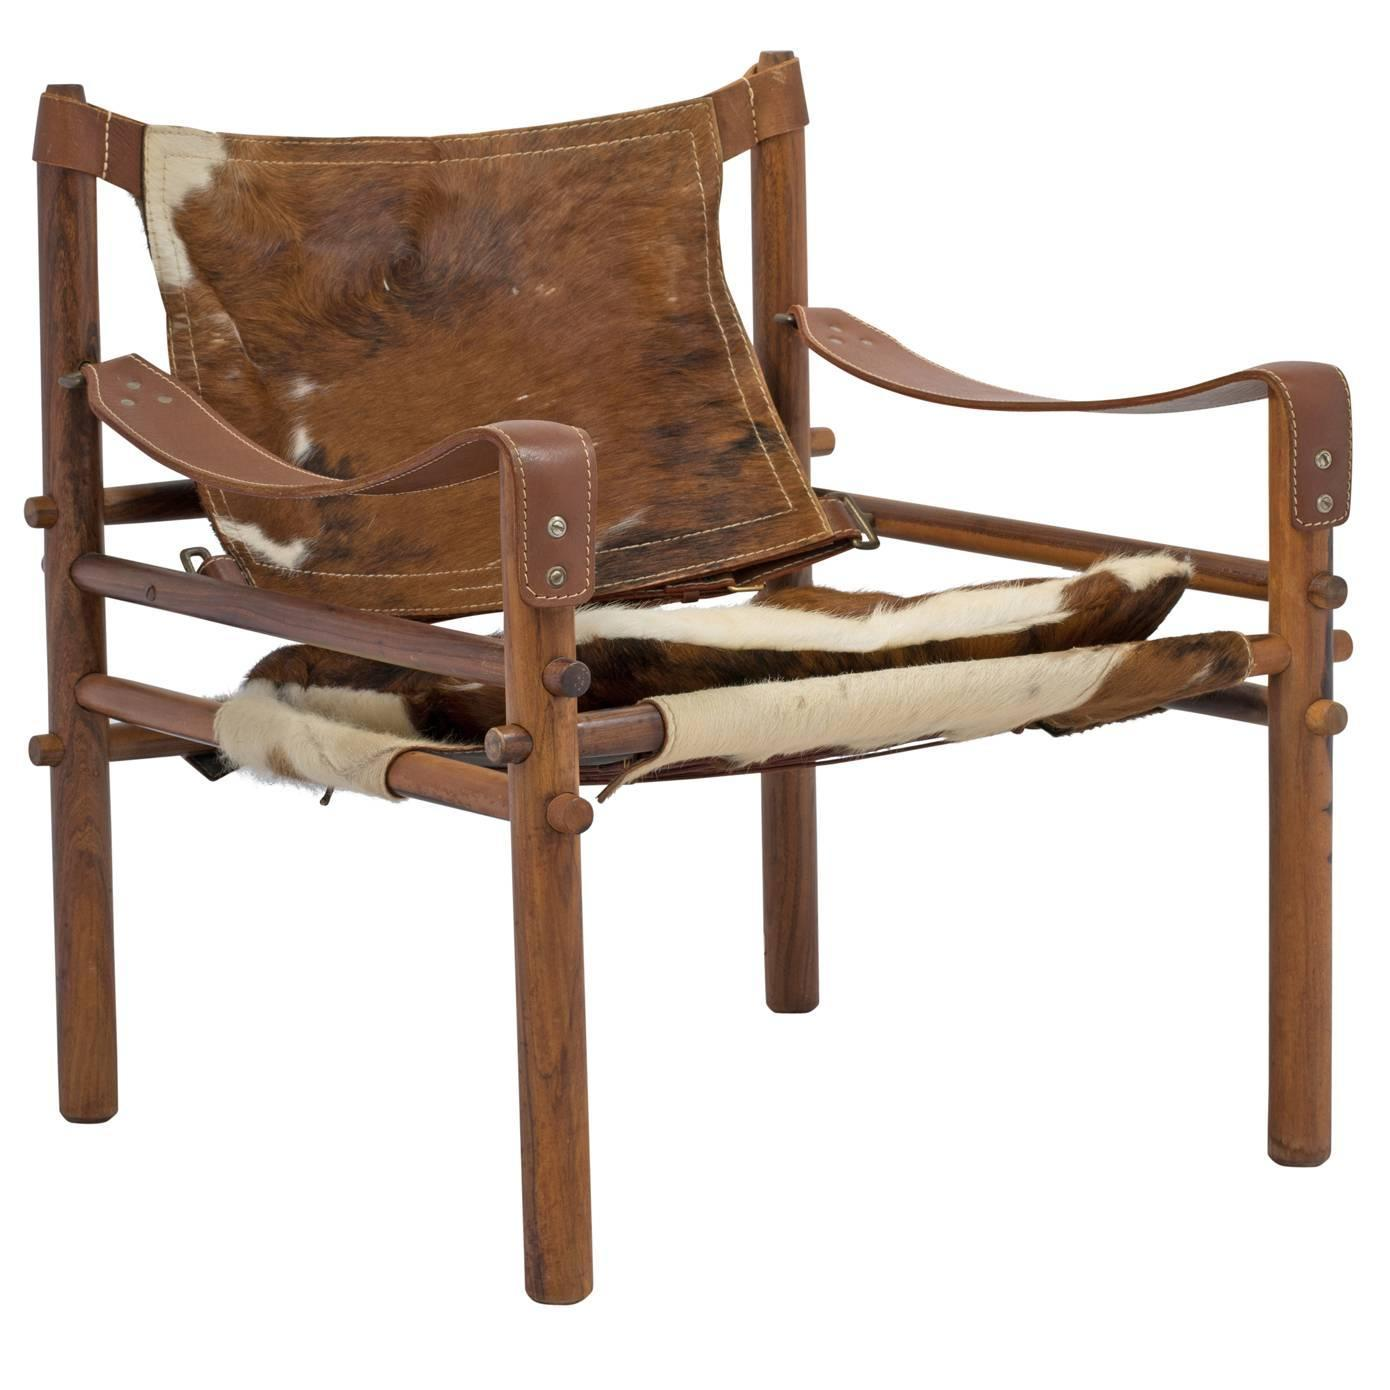 Arne Norell Sirocco Safari Chair in Rosewood and Cowhide at 1stdibs